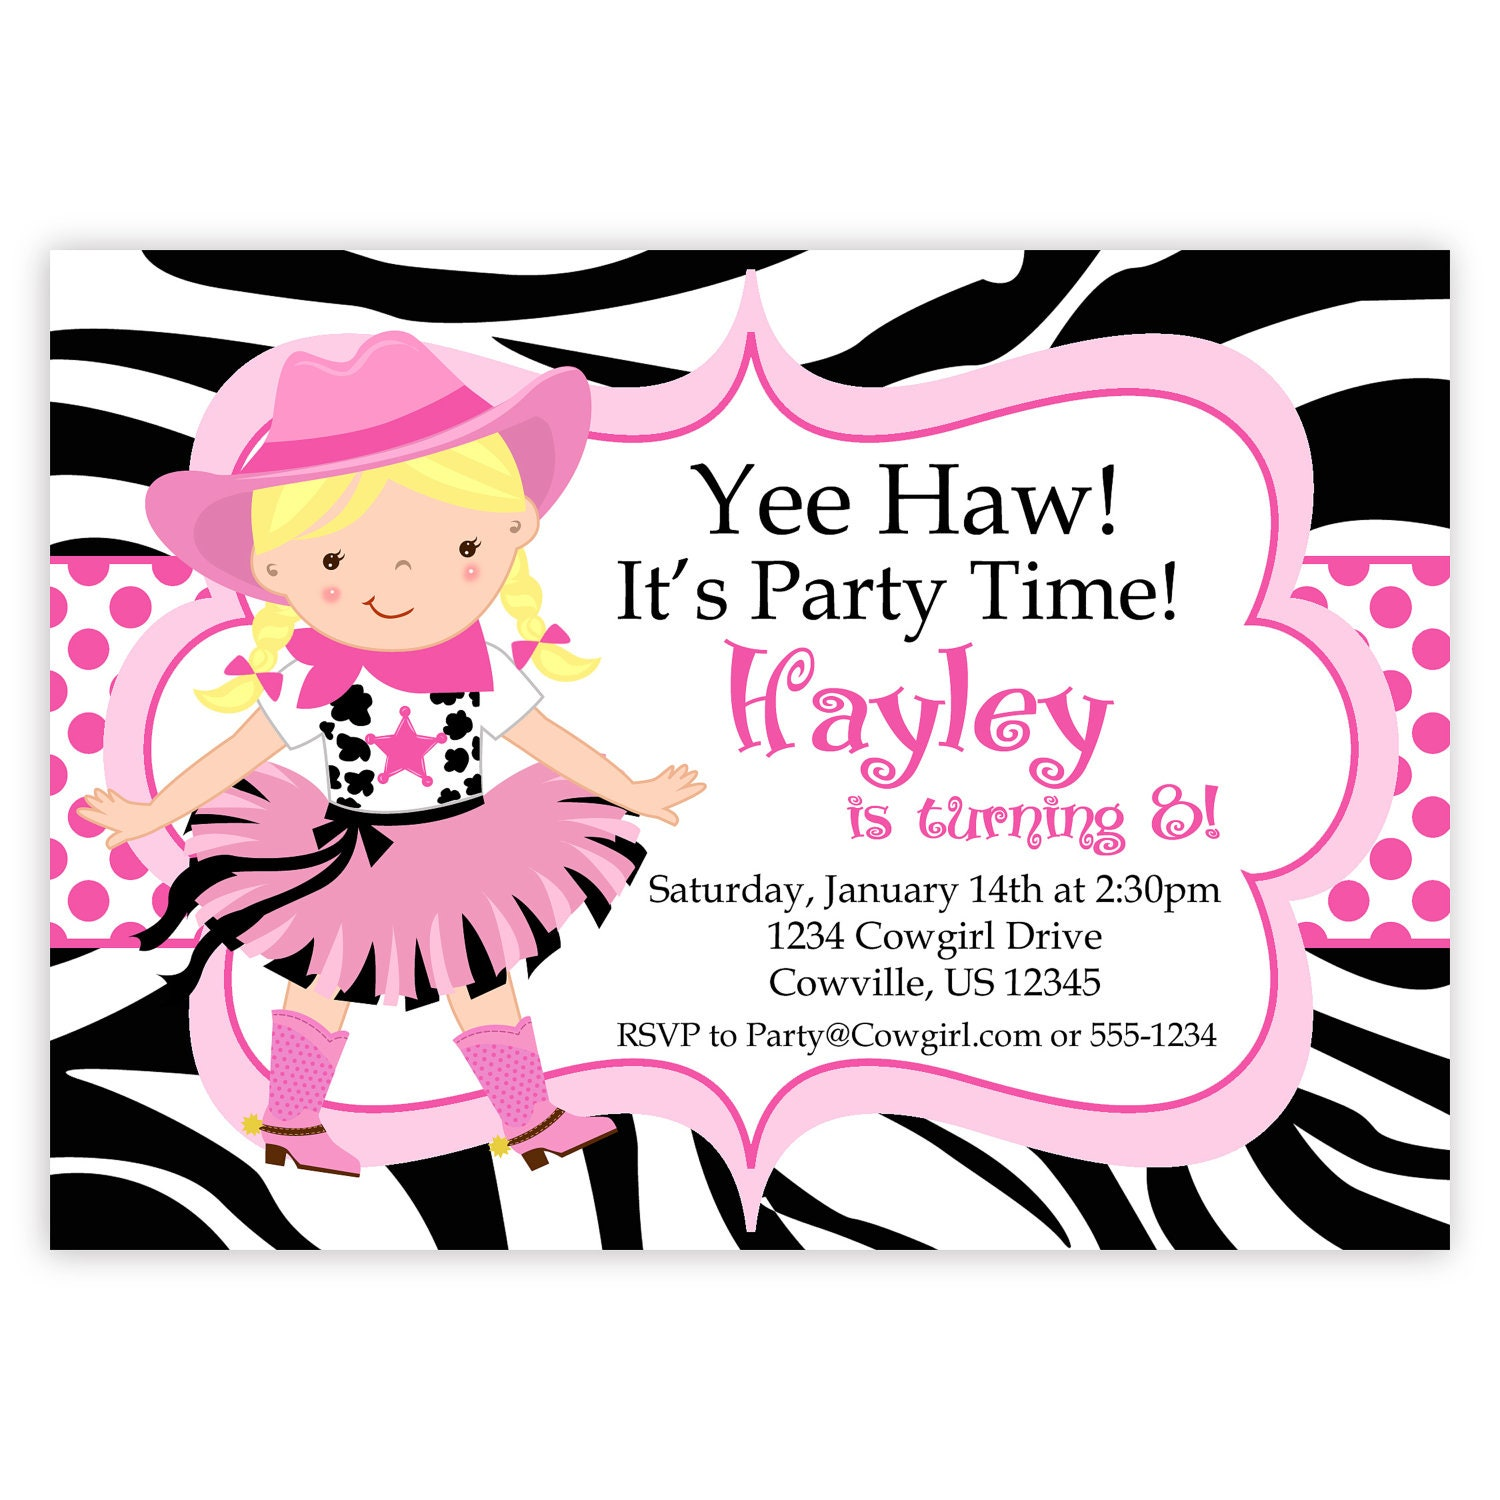 Cowgirl Birthday Invitation Hot Pink Zebra Print Polka Dot | Etsy